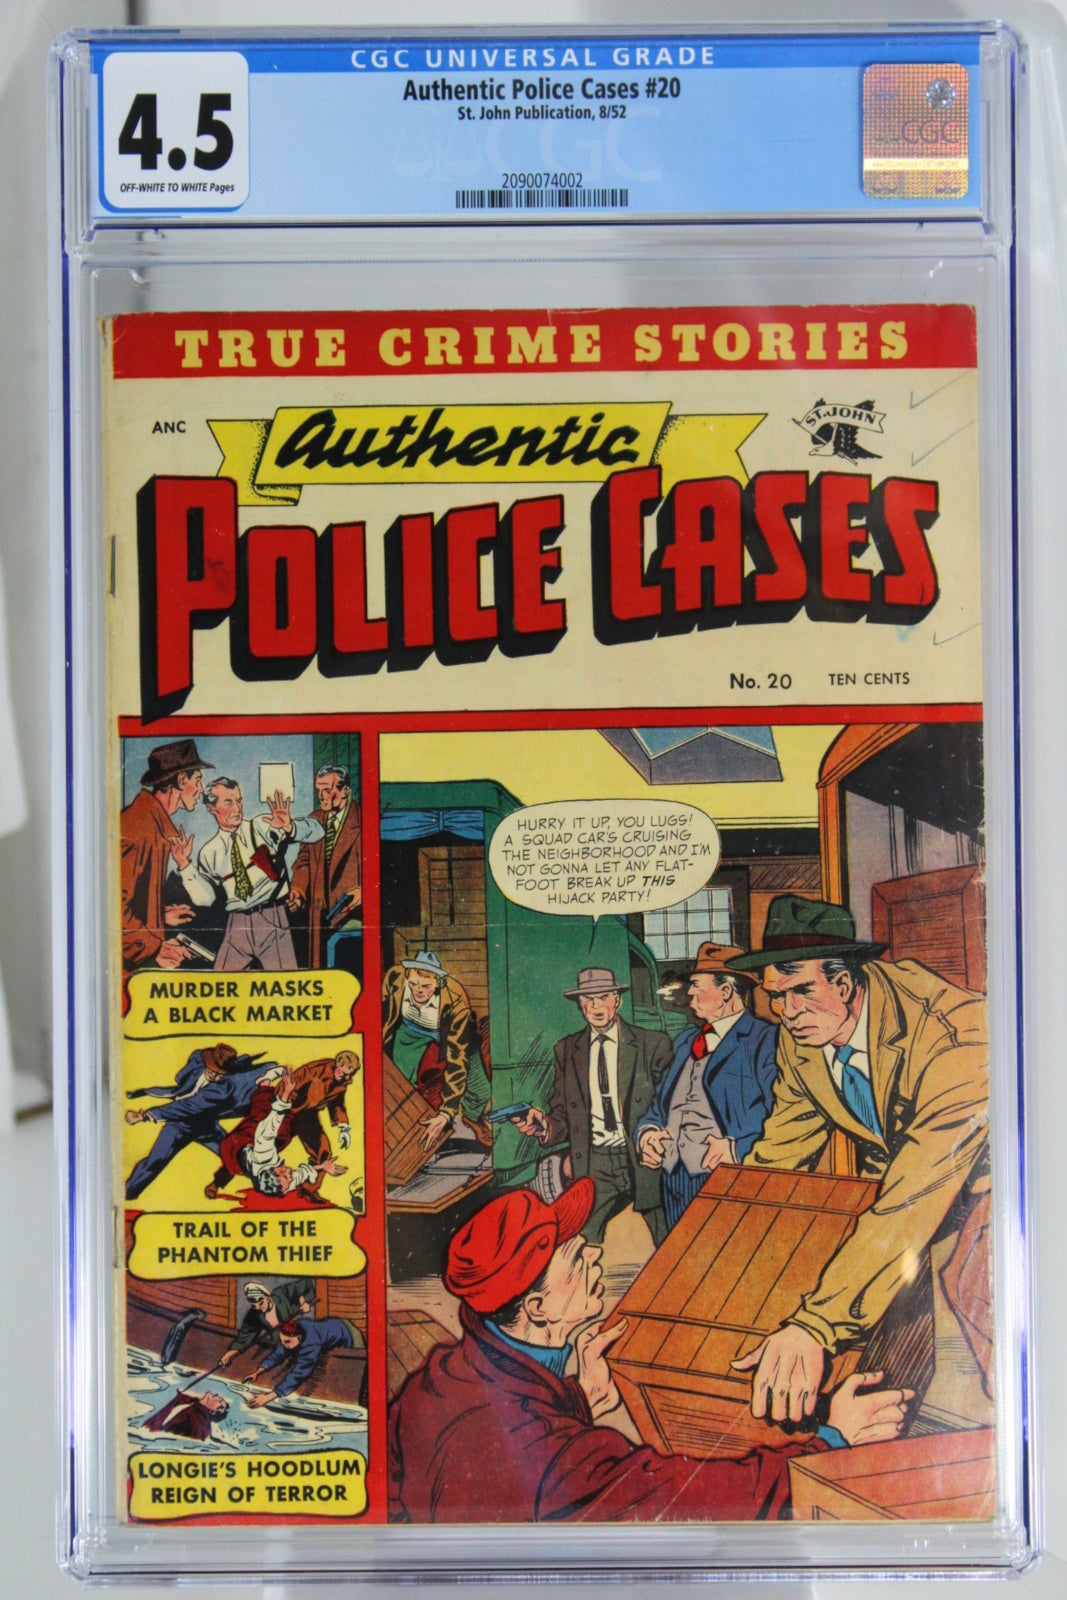 Authentic Police Cases #20 CGC 4.5, Crime Comic